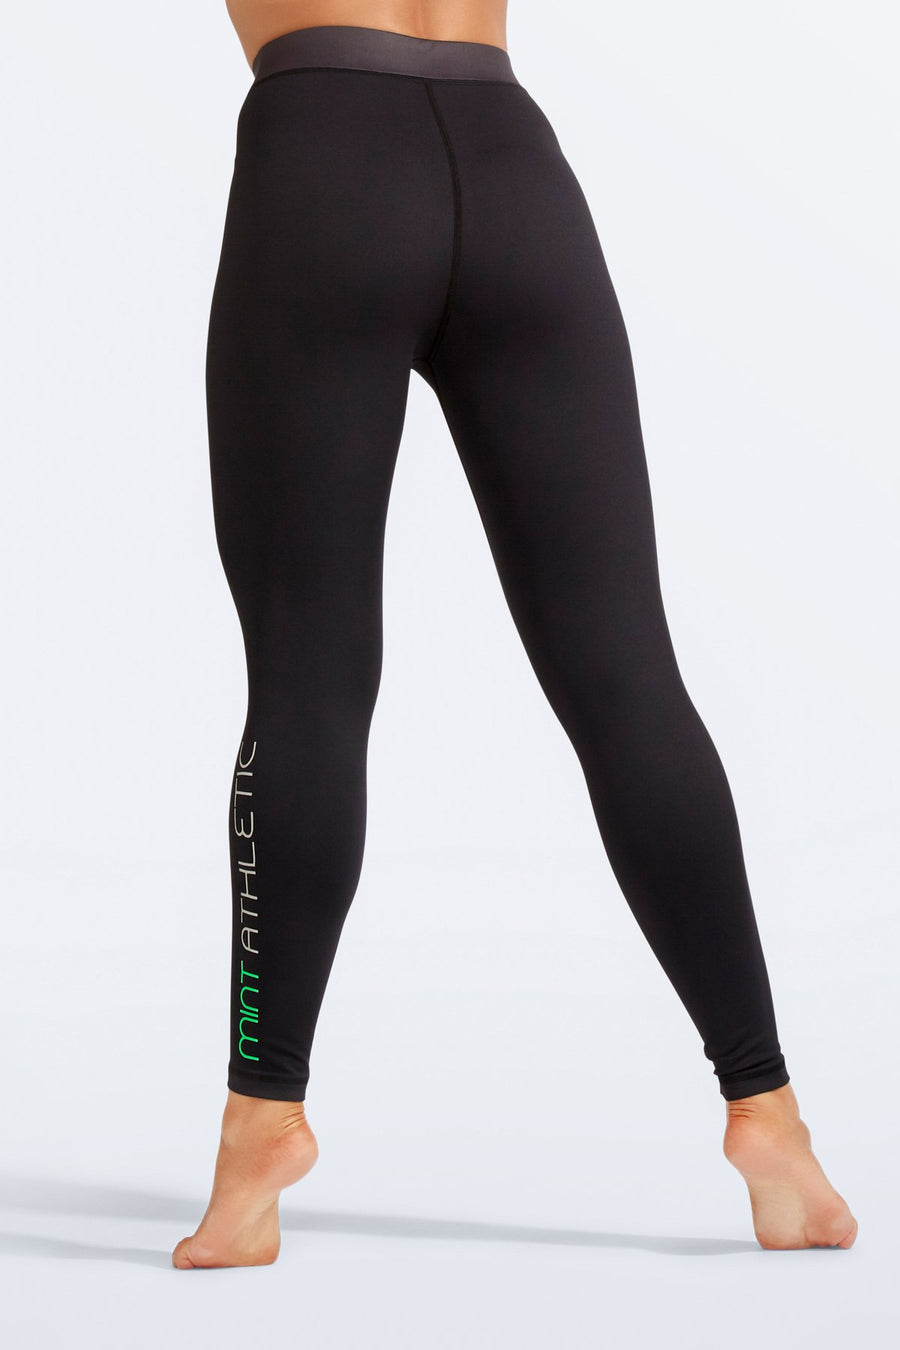 Boston 7/8 Leggings - Mint Athletic Apparel